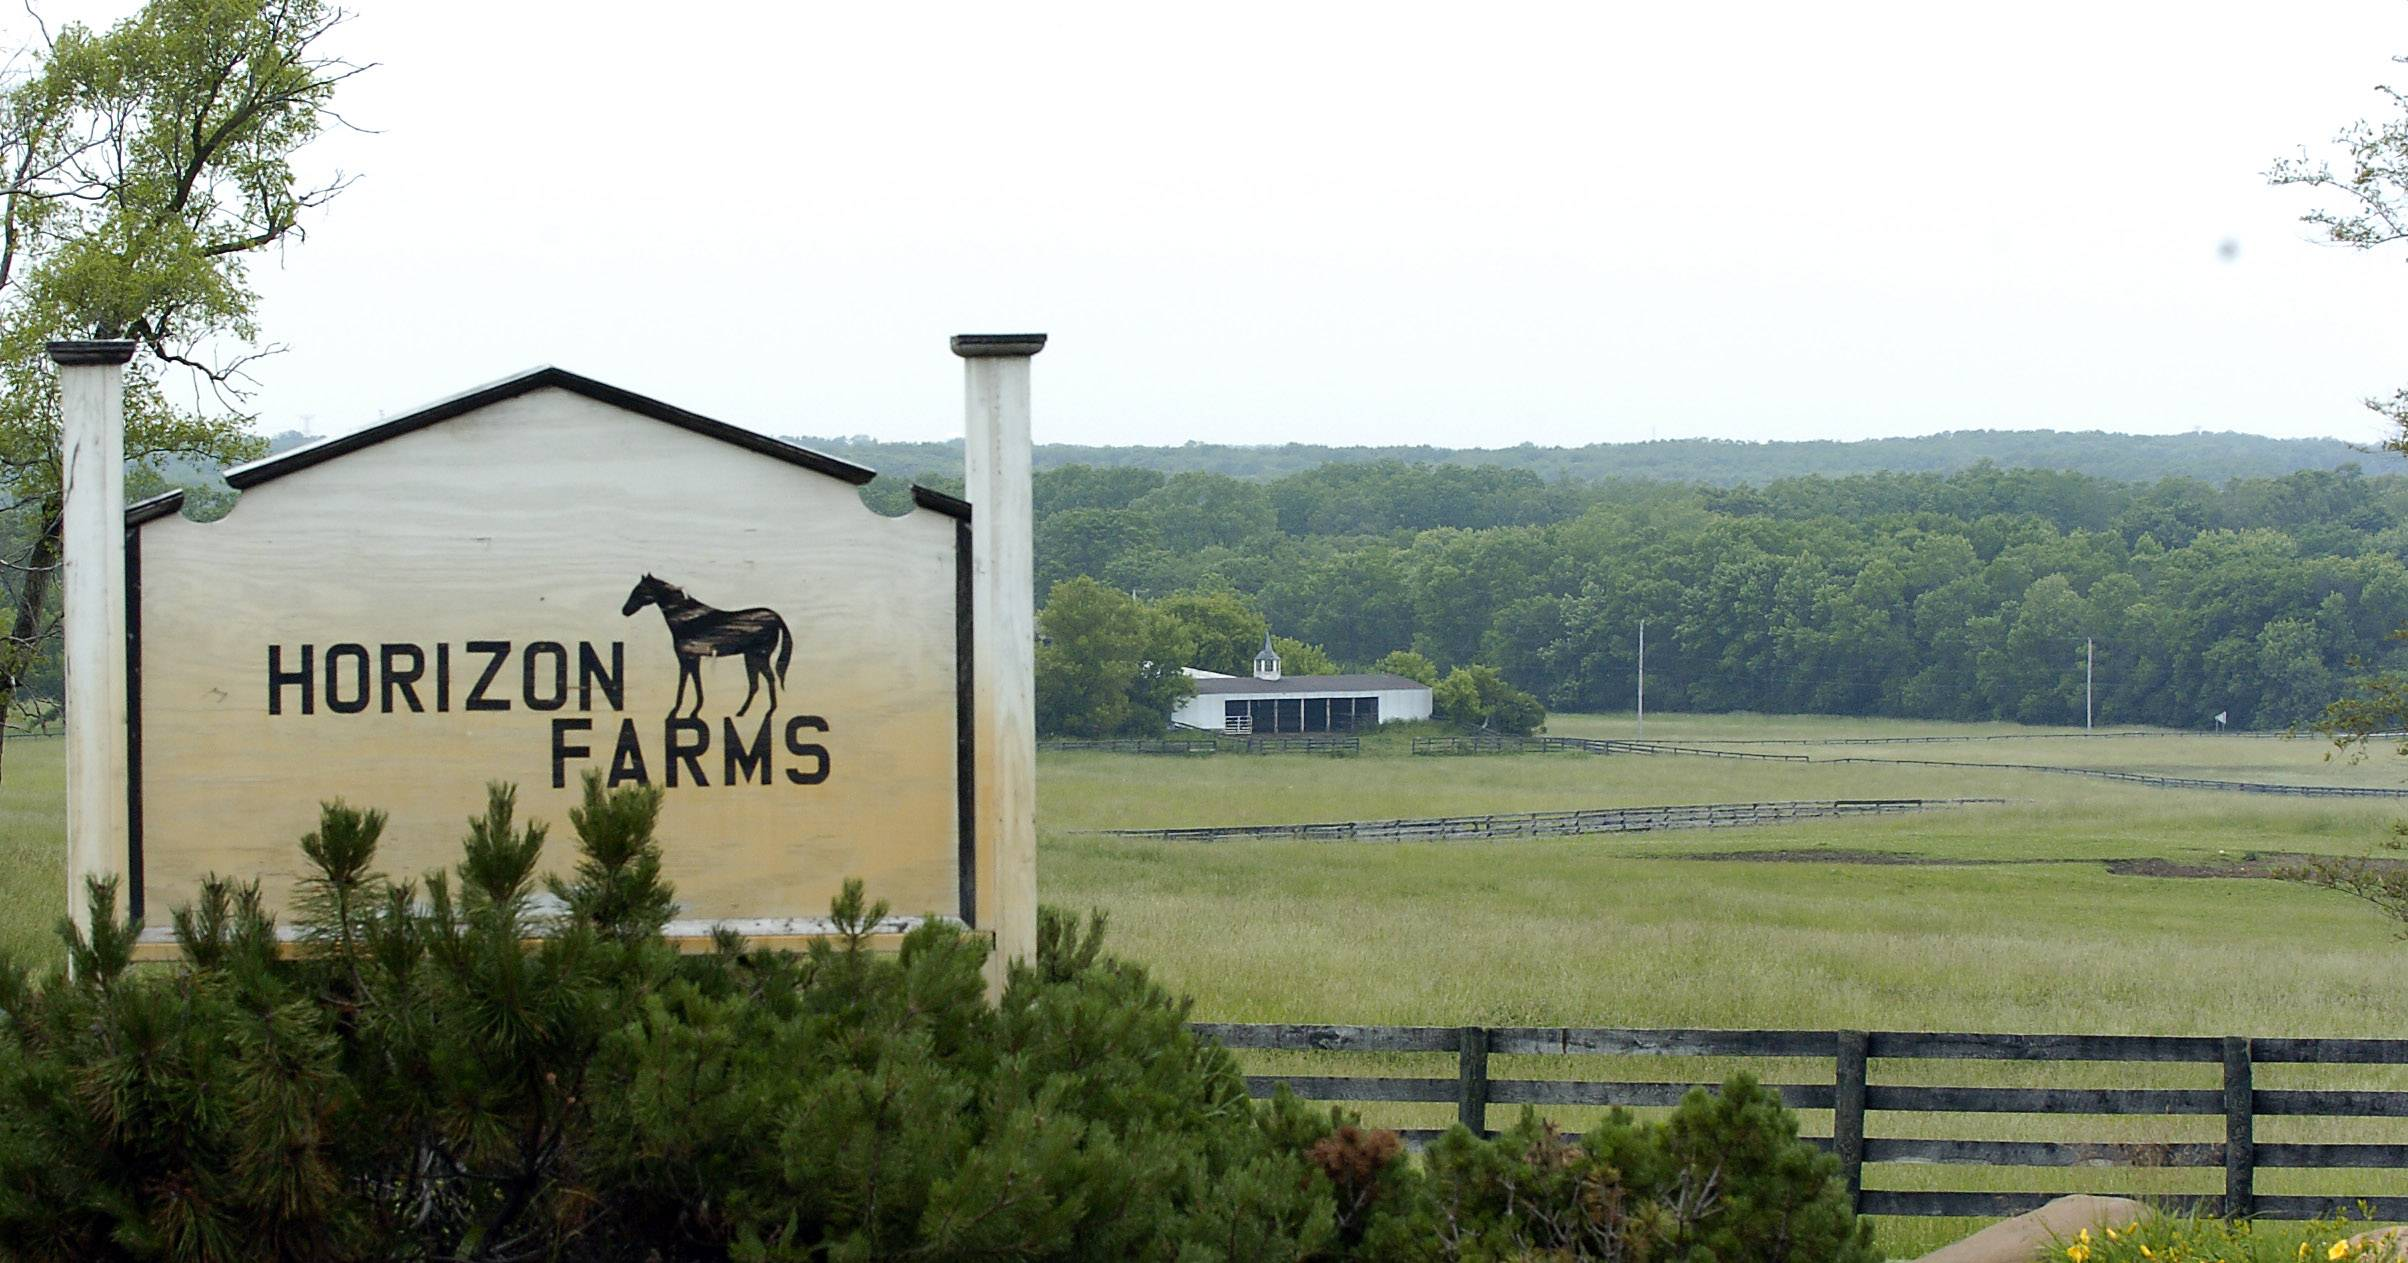 A sign marks the main road of Horizon Farms, a 400-acre equestrian estate in Barrington Hills, which the Cook County Forest Preserve District owns. The previous owners have filed a lawsuit against the district and several others alleging fraud in the sale that gave the forest district ownership.